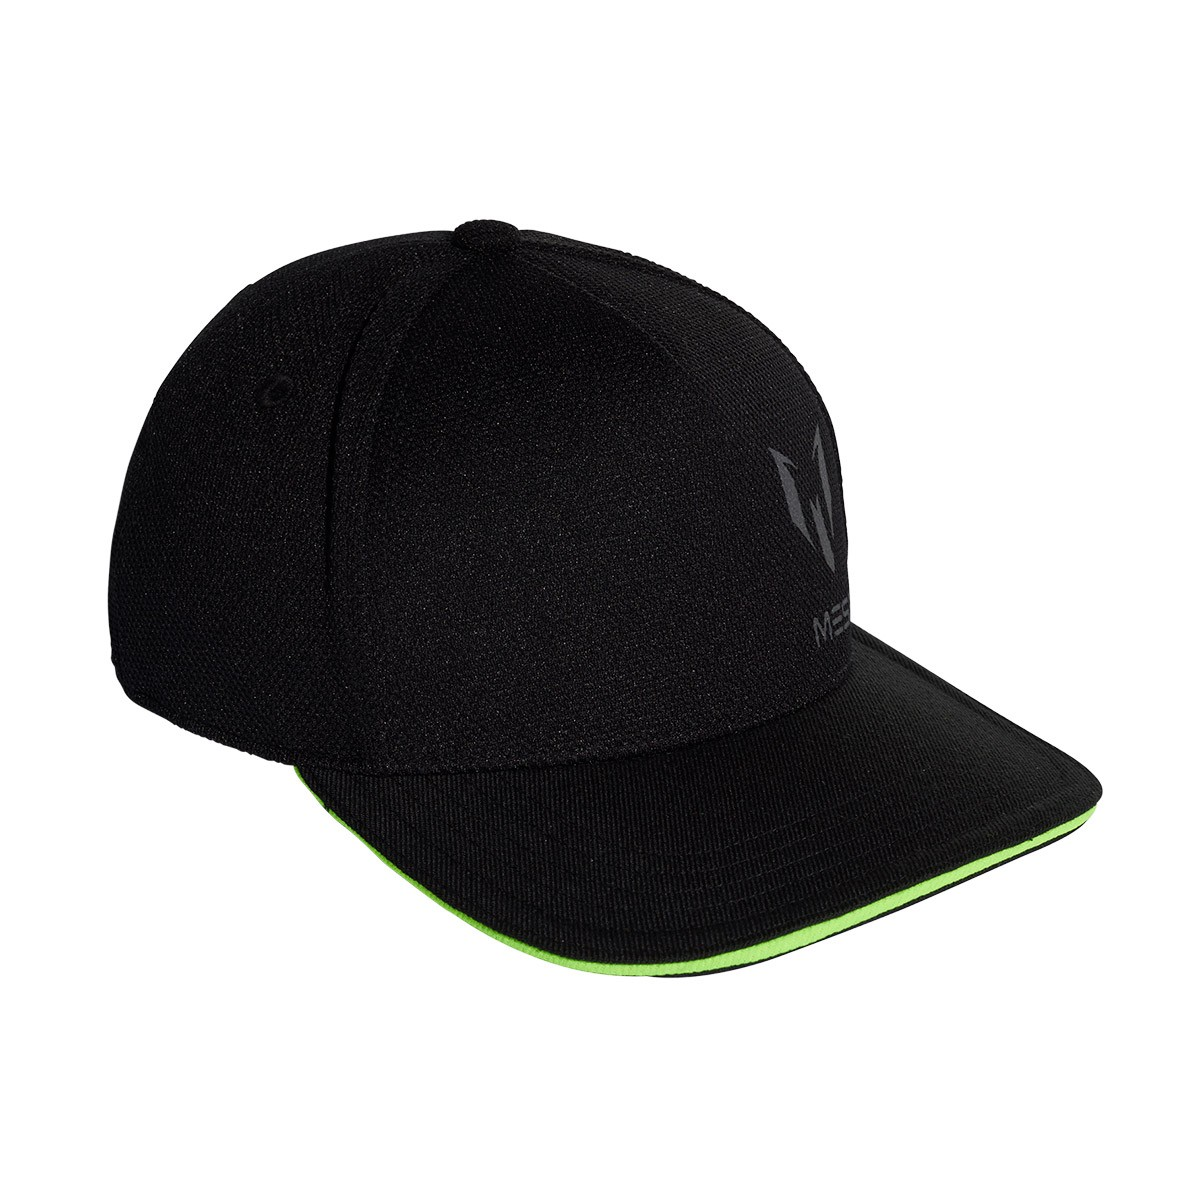 07eafcaaaec4d Cap adidas Kids Messi Black-Solar green - Football store Fútbol Emotion